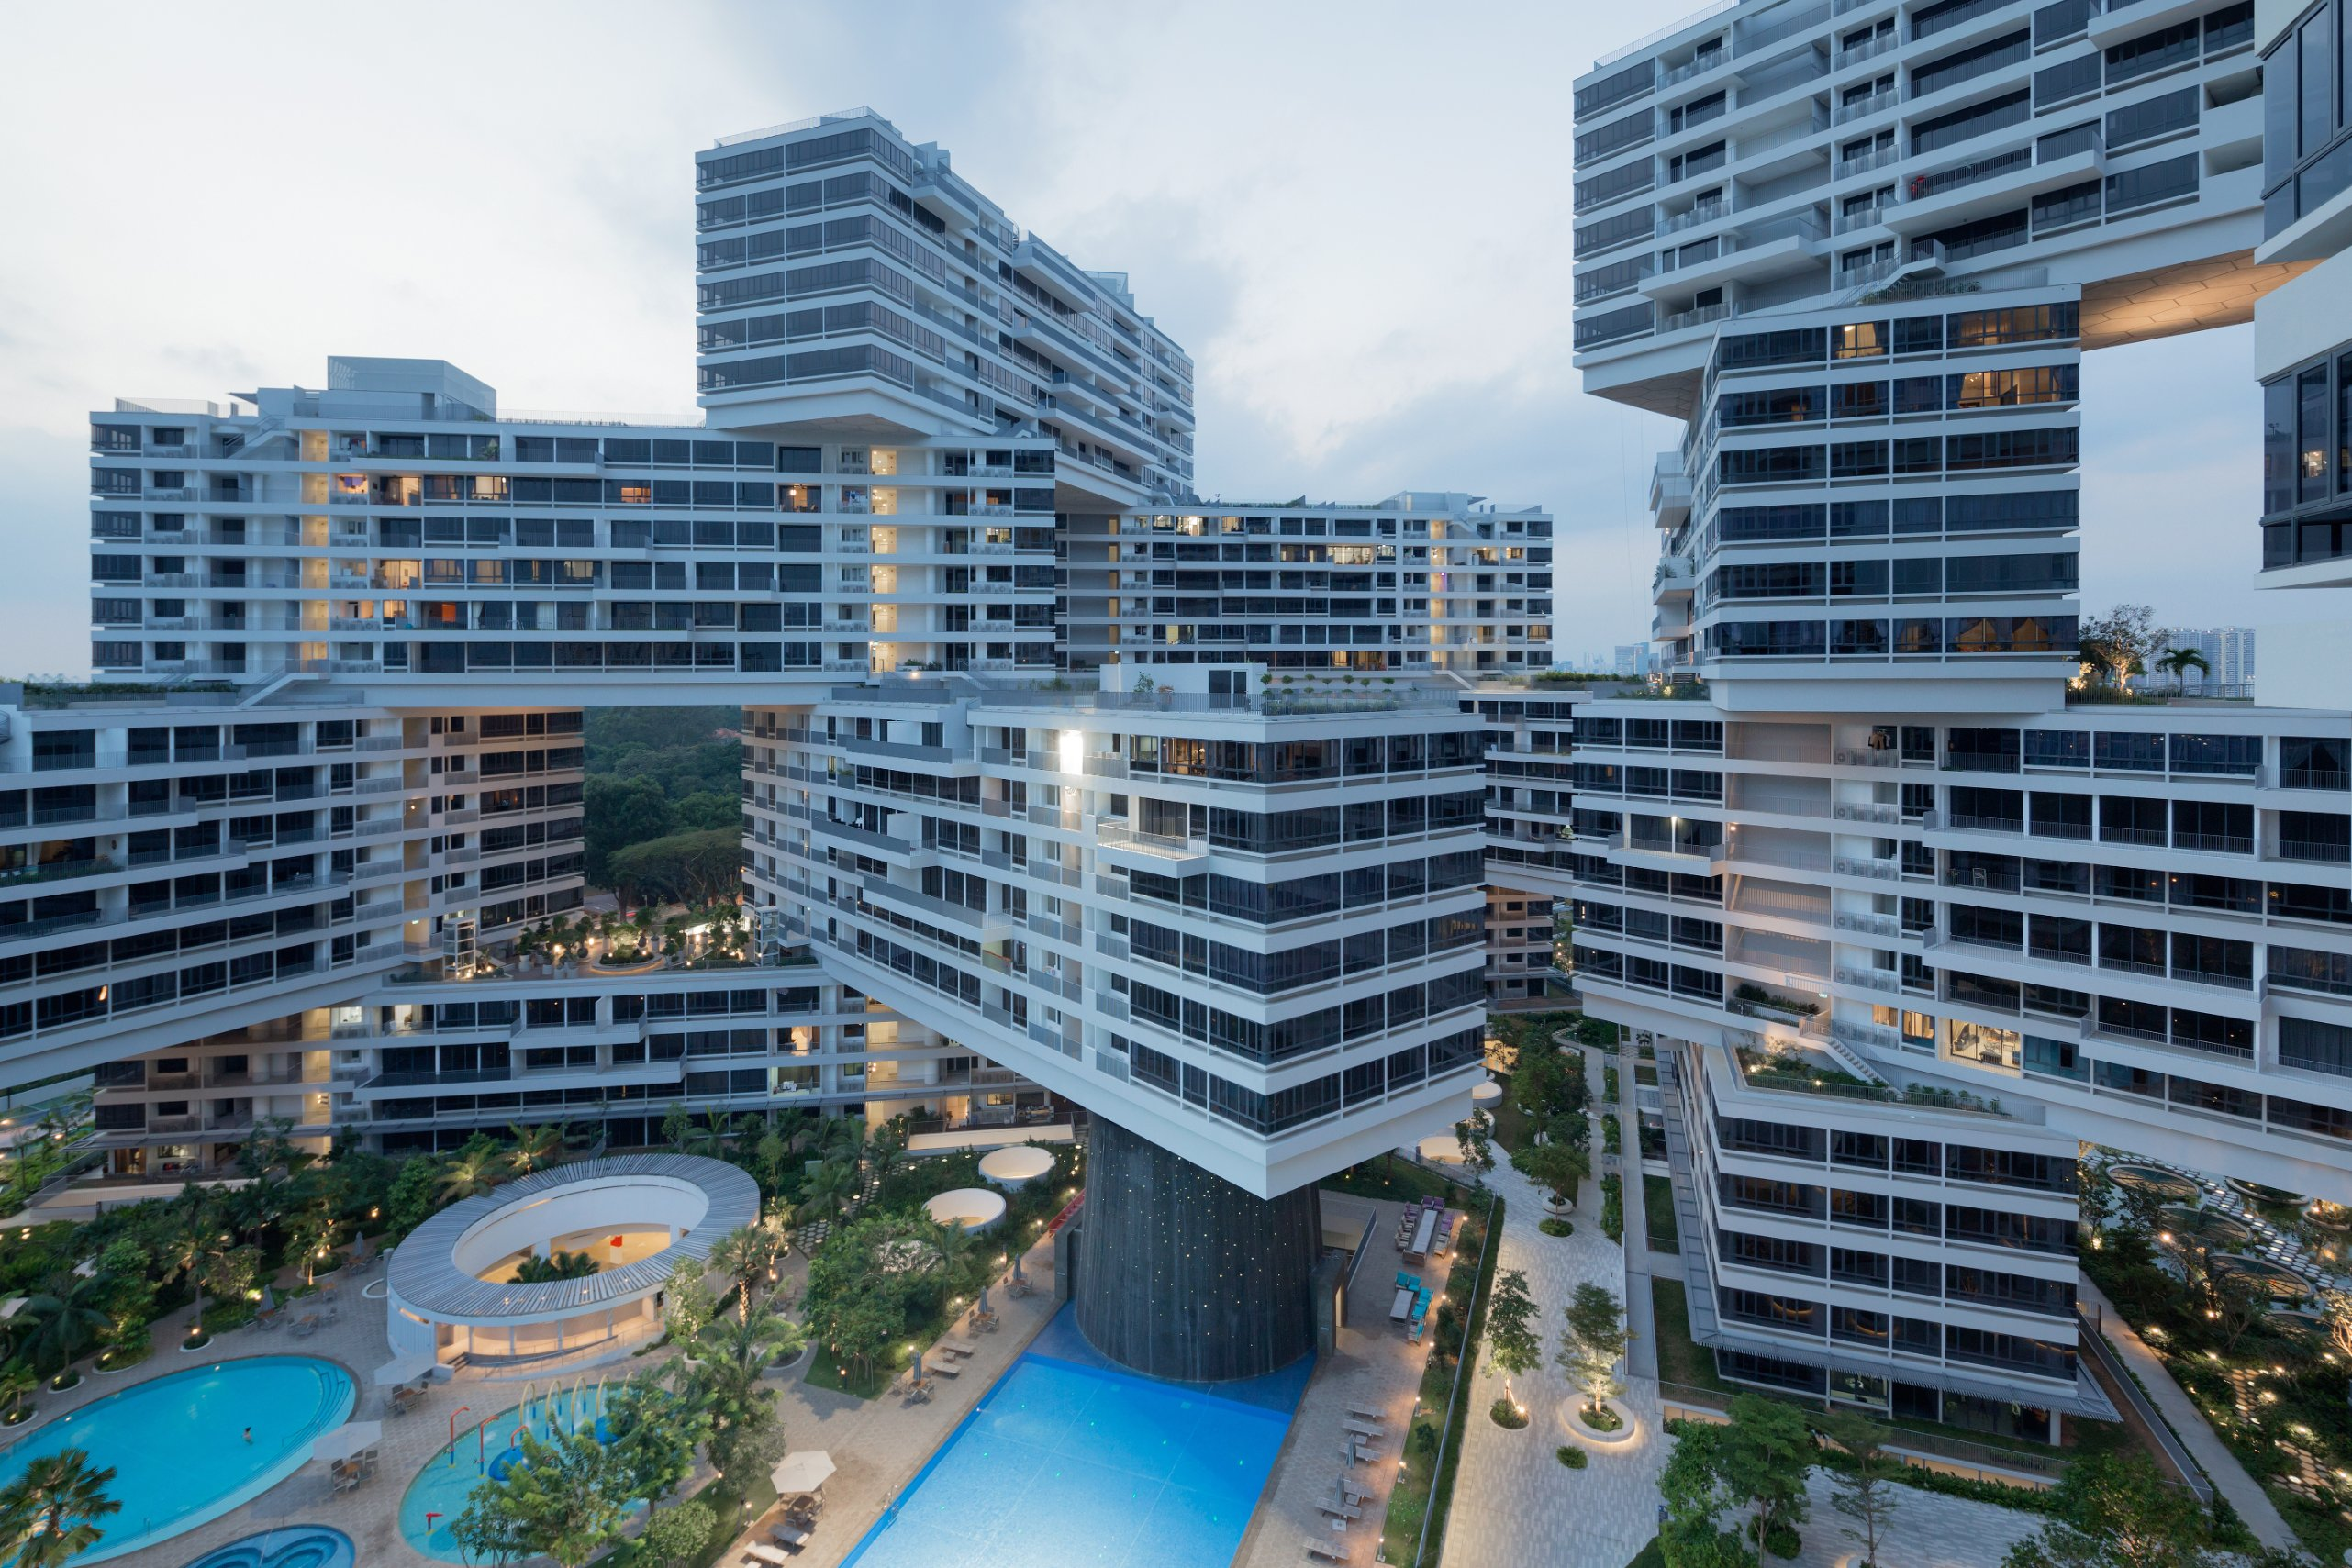 160624163455 ole scheeren oma the interlace.jpg